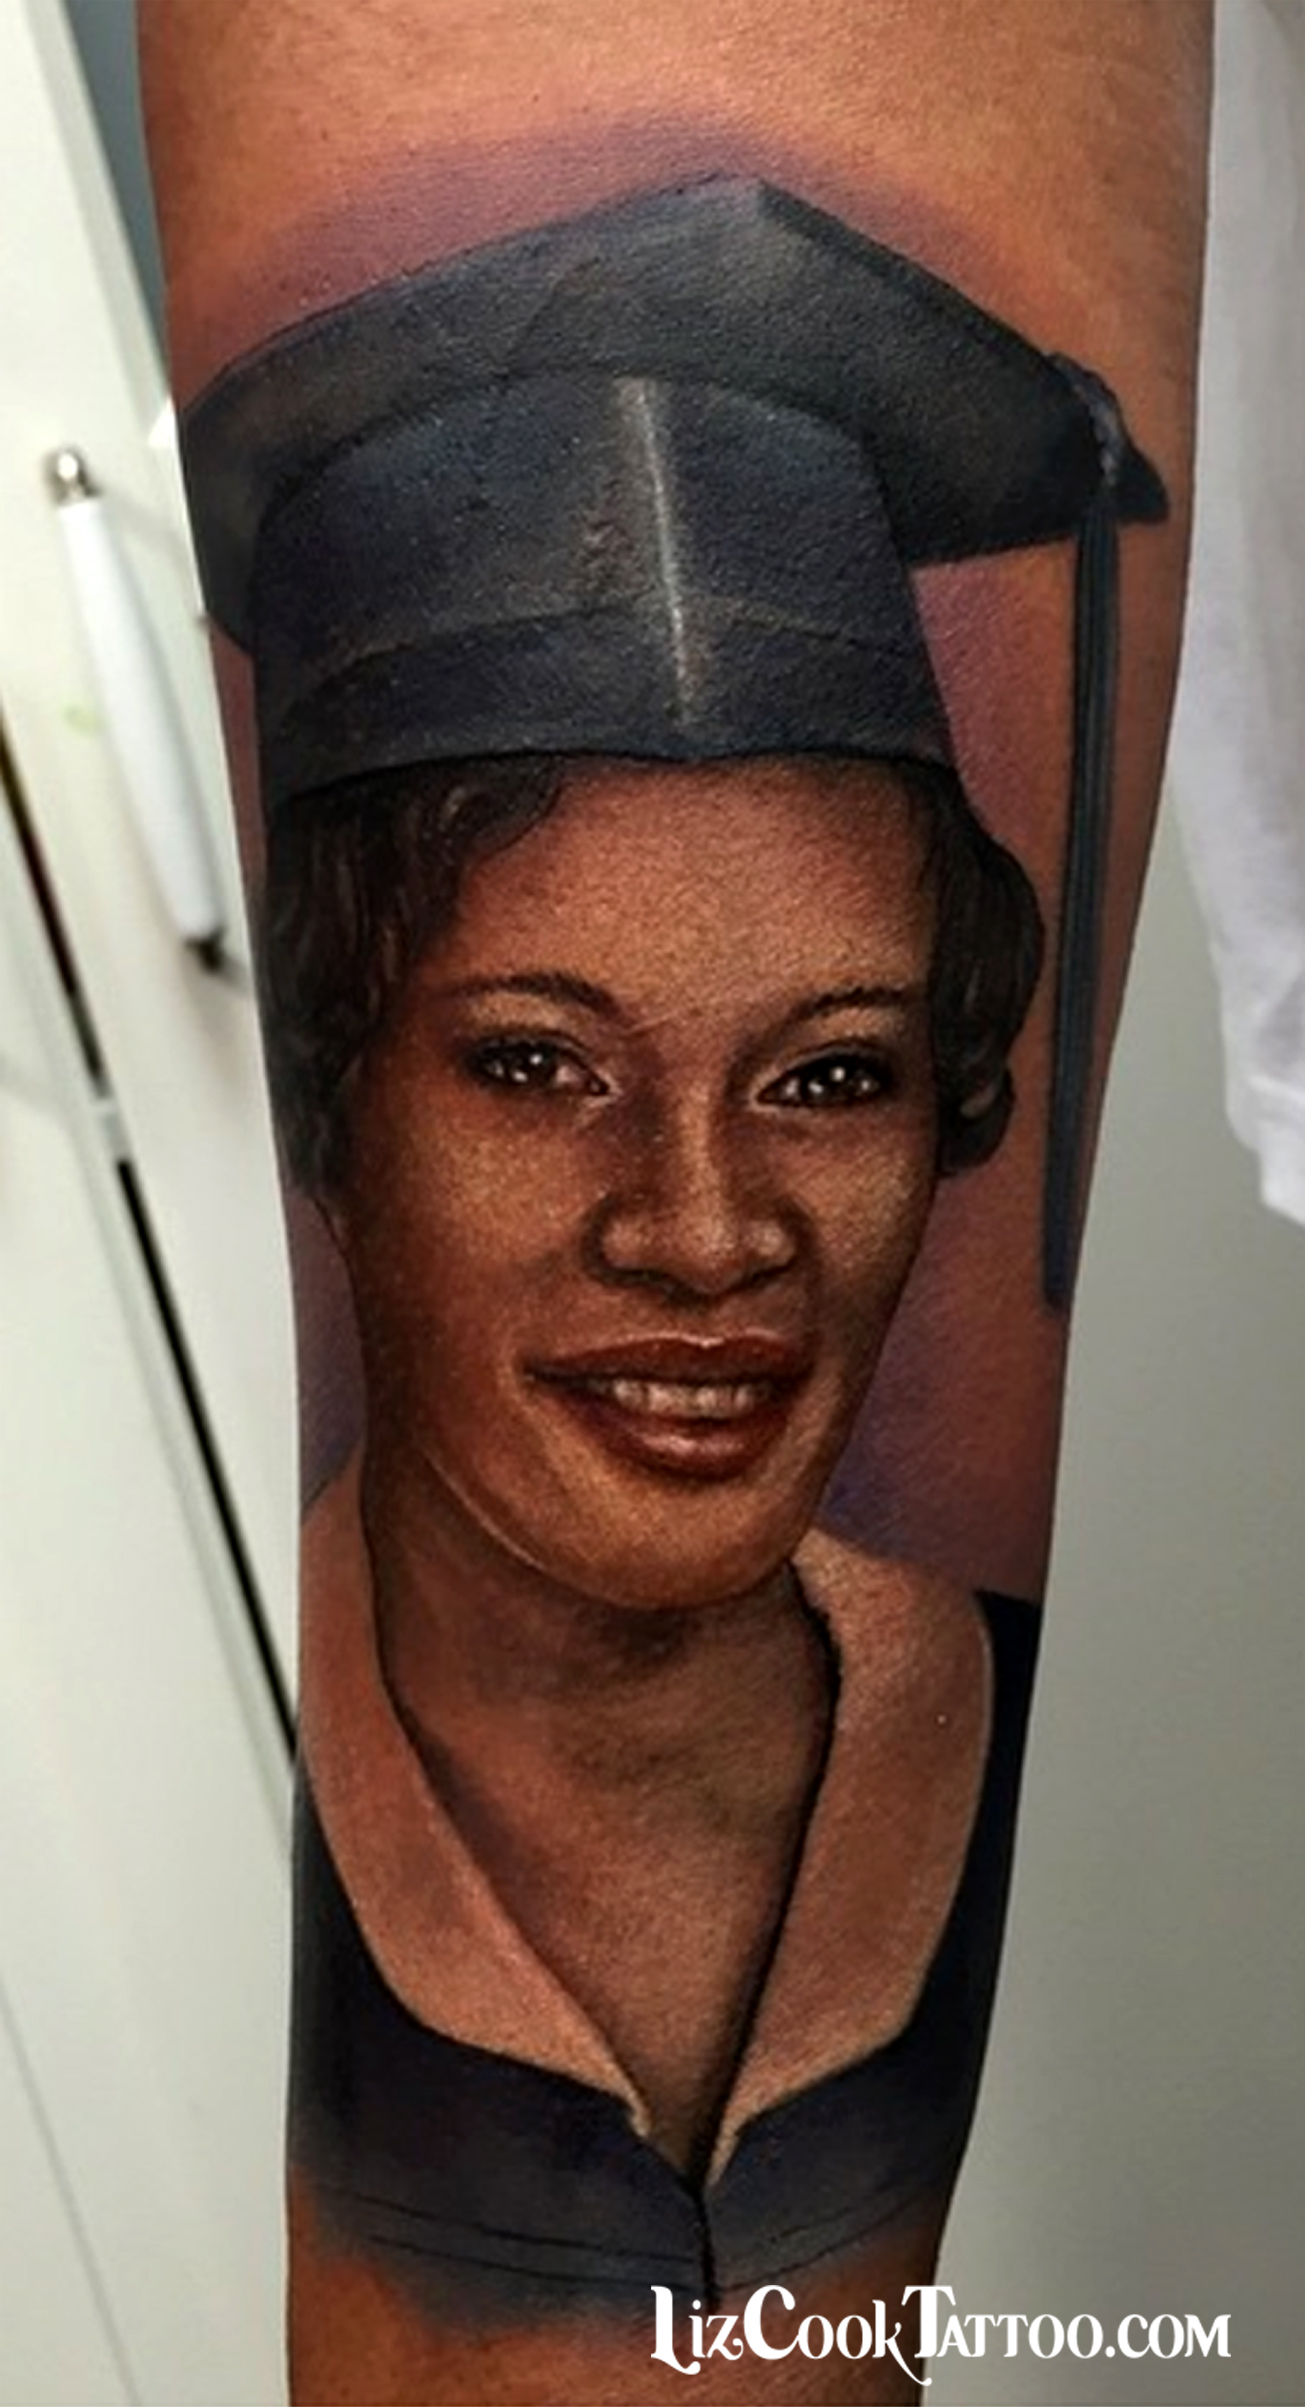 Liz Cook Tattoo Portrait Aunt Graduating Realism Color Dark Skin.jpg